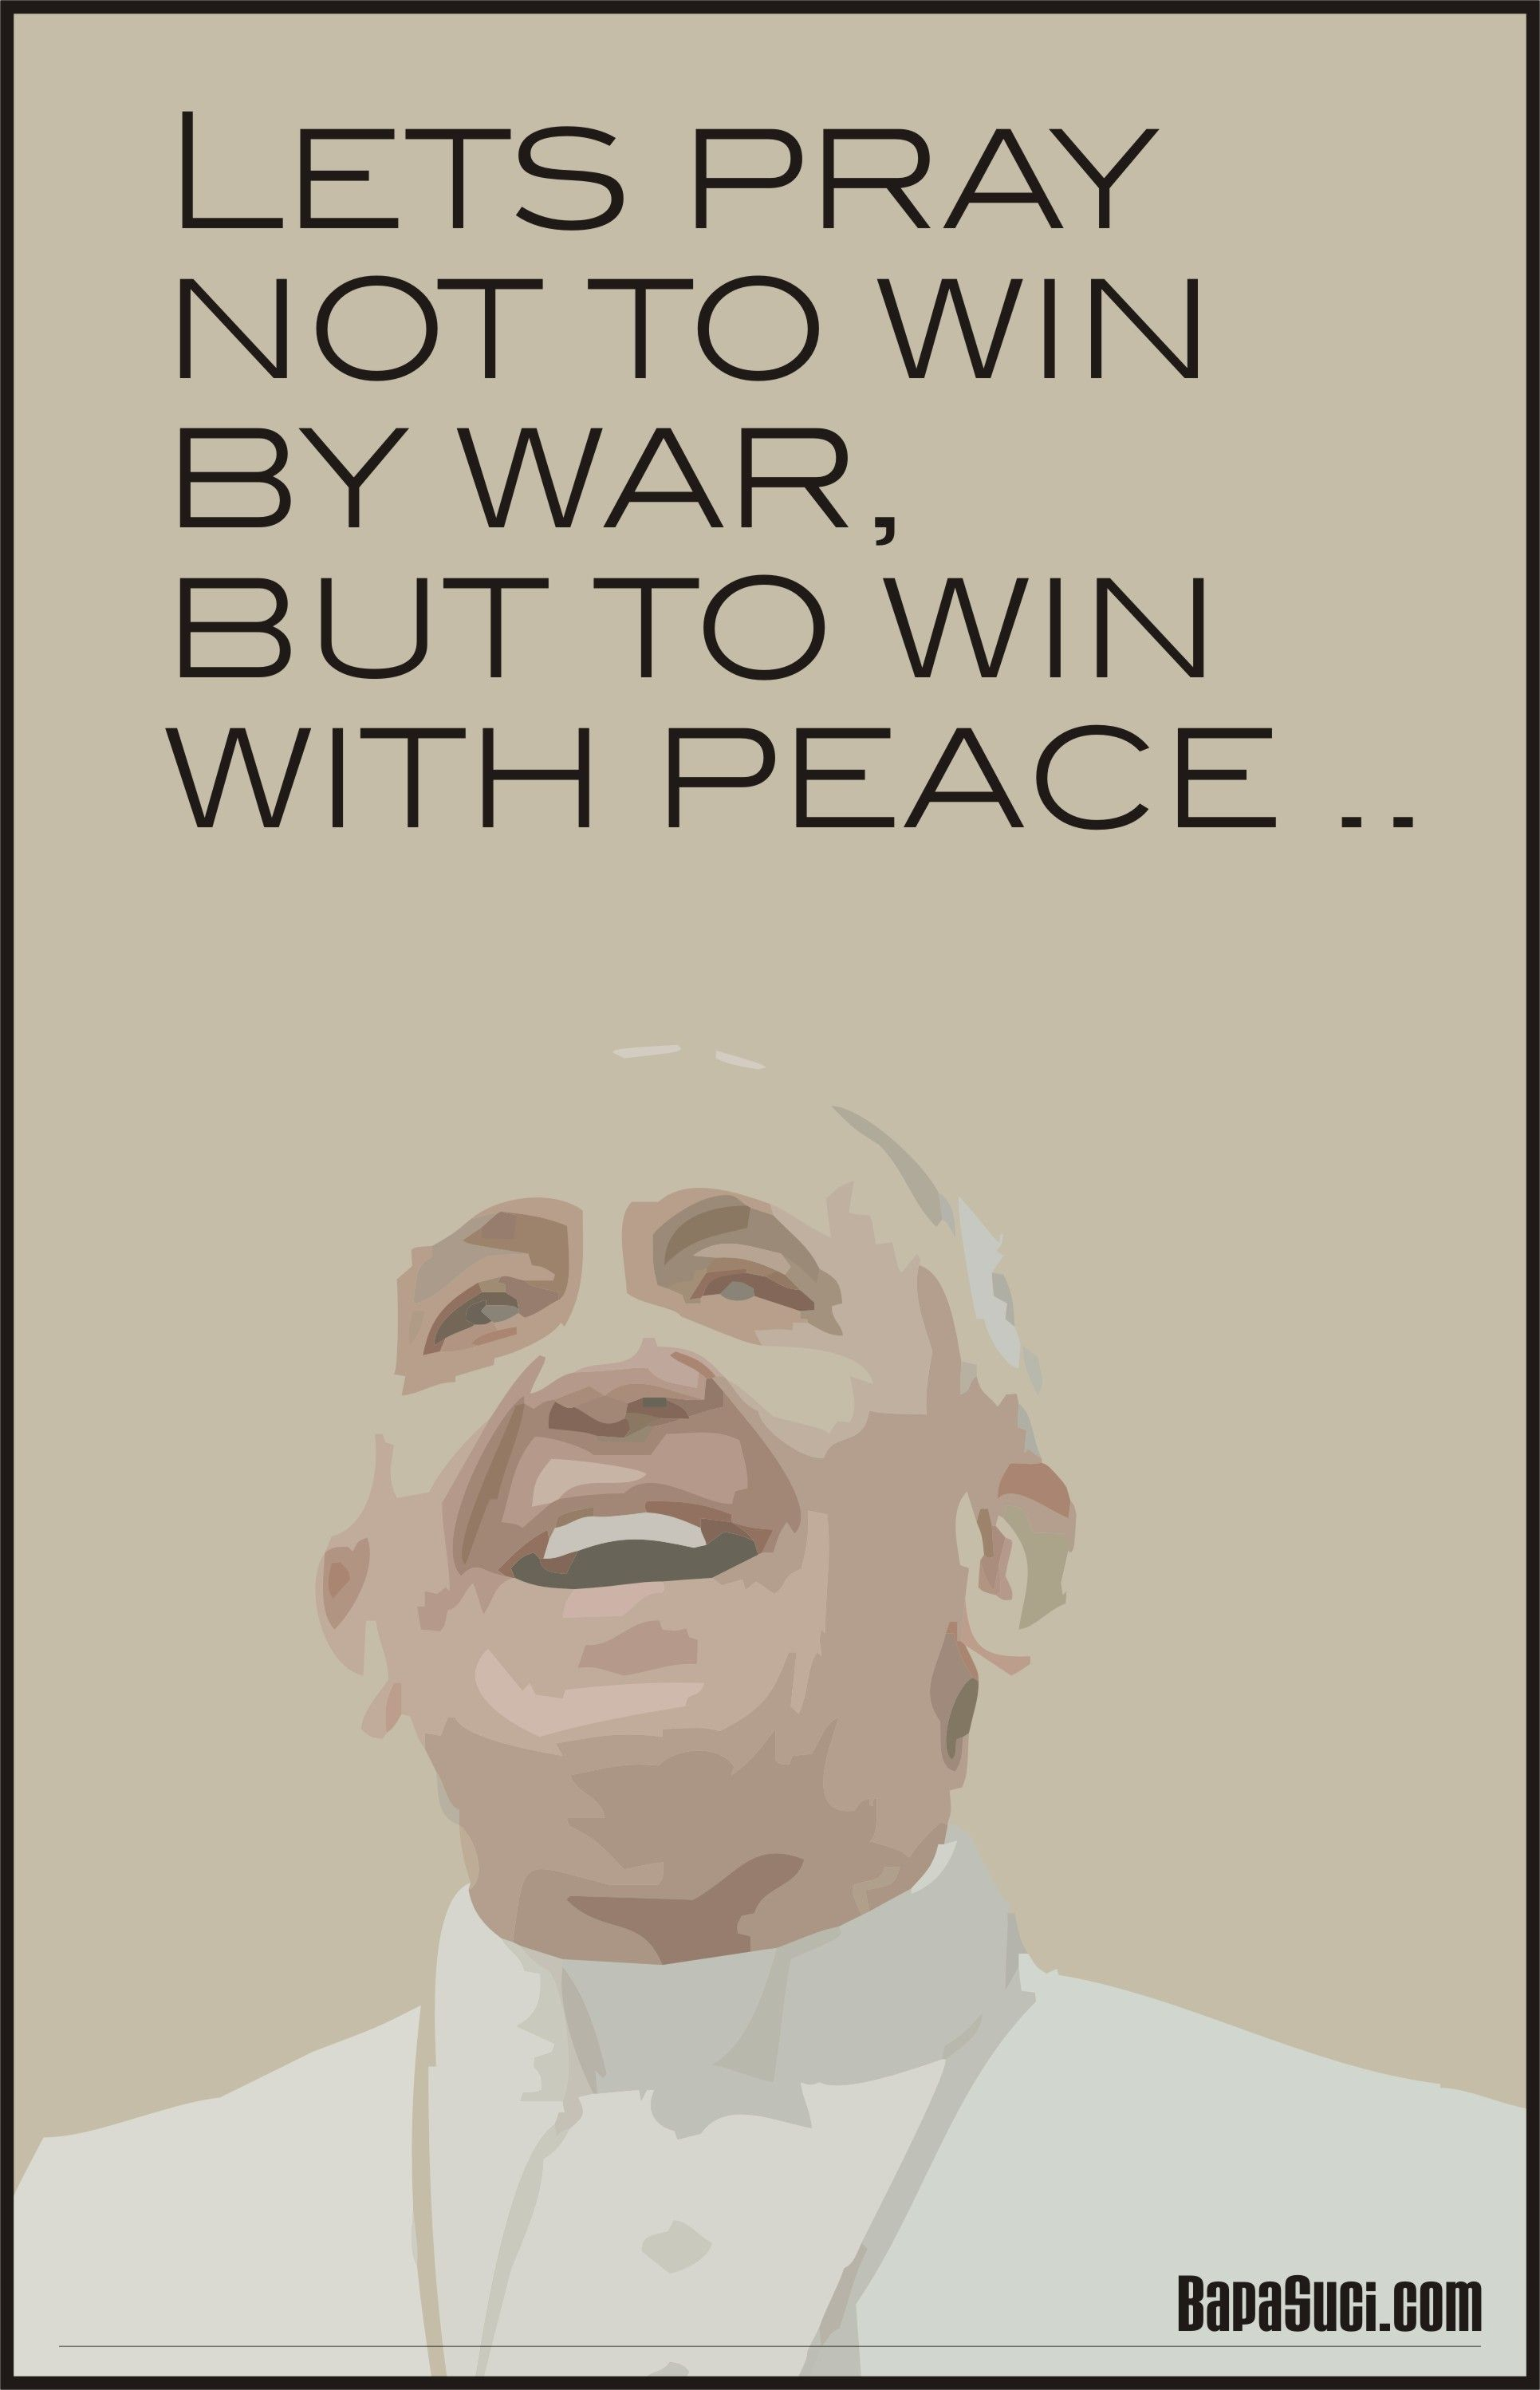 Lets Pray To Win With Peace Not By War Pope Francis Inspirierende Zitate Und Spruche Inspirierende Zitate Zitate